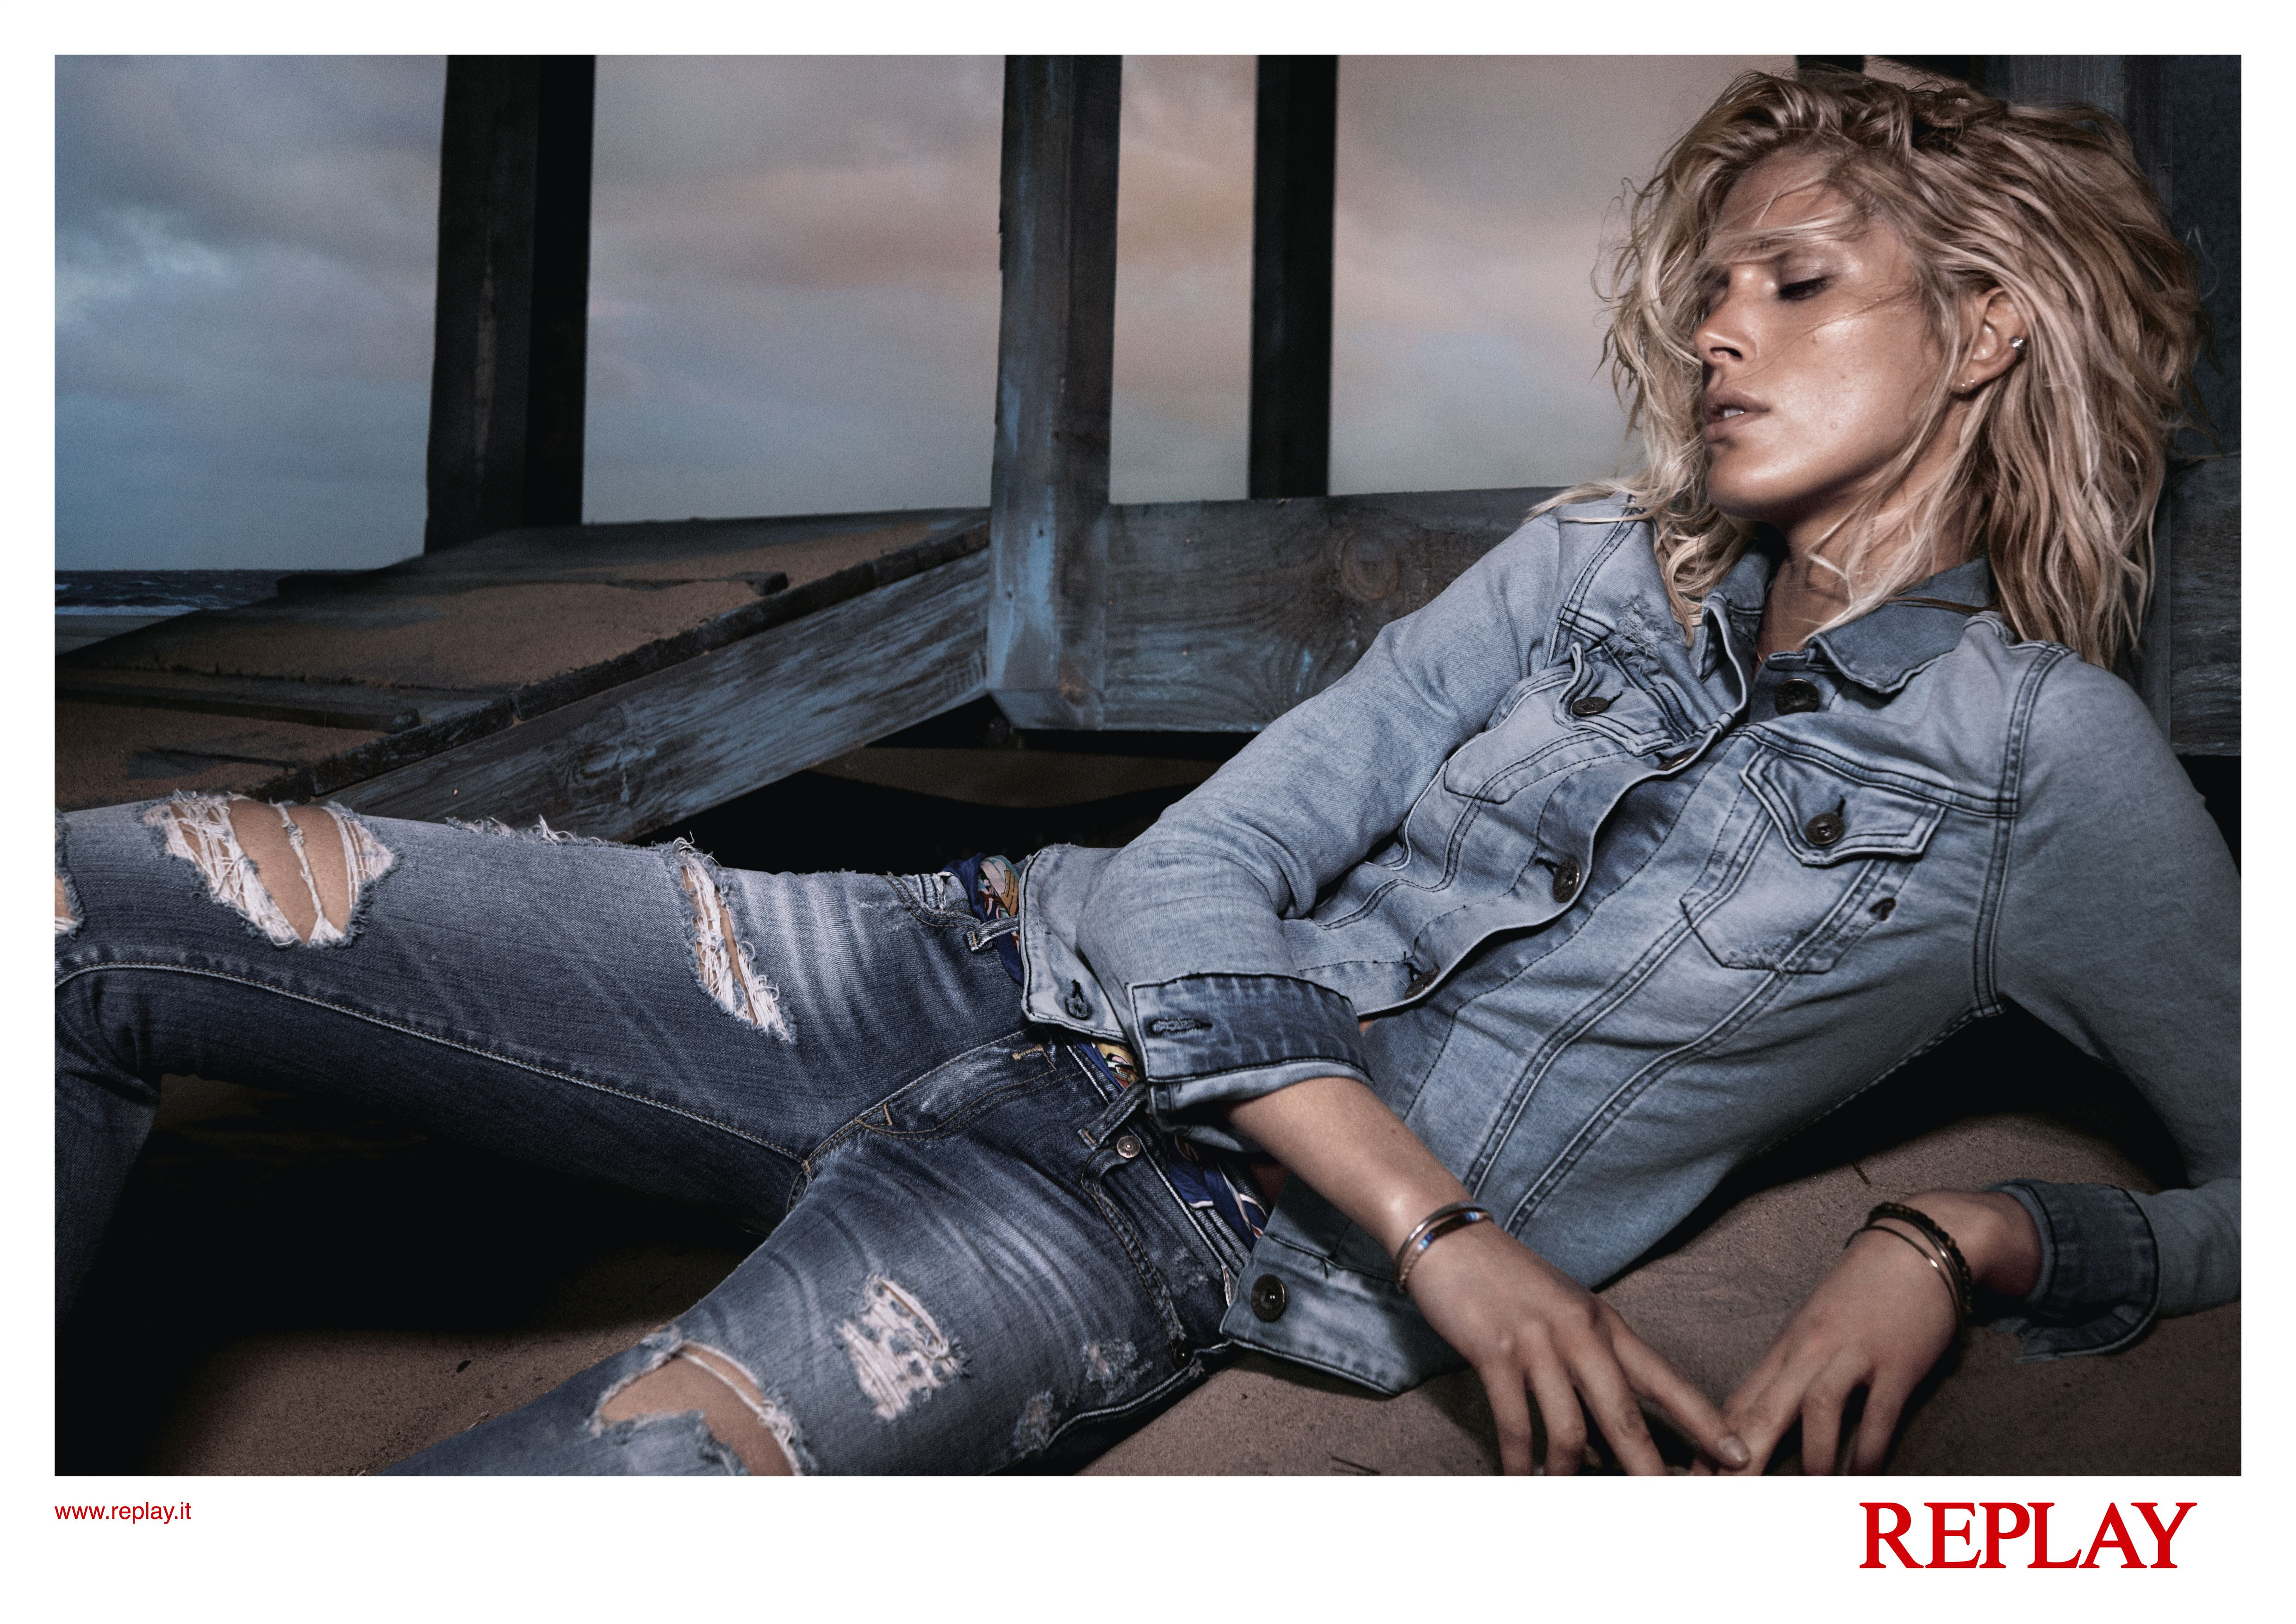 #REPLAY #SS14 advertising campaign by  David Sims